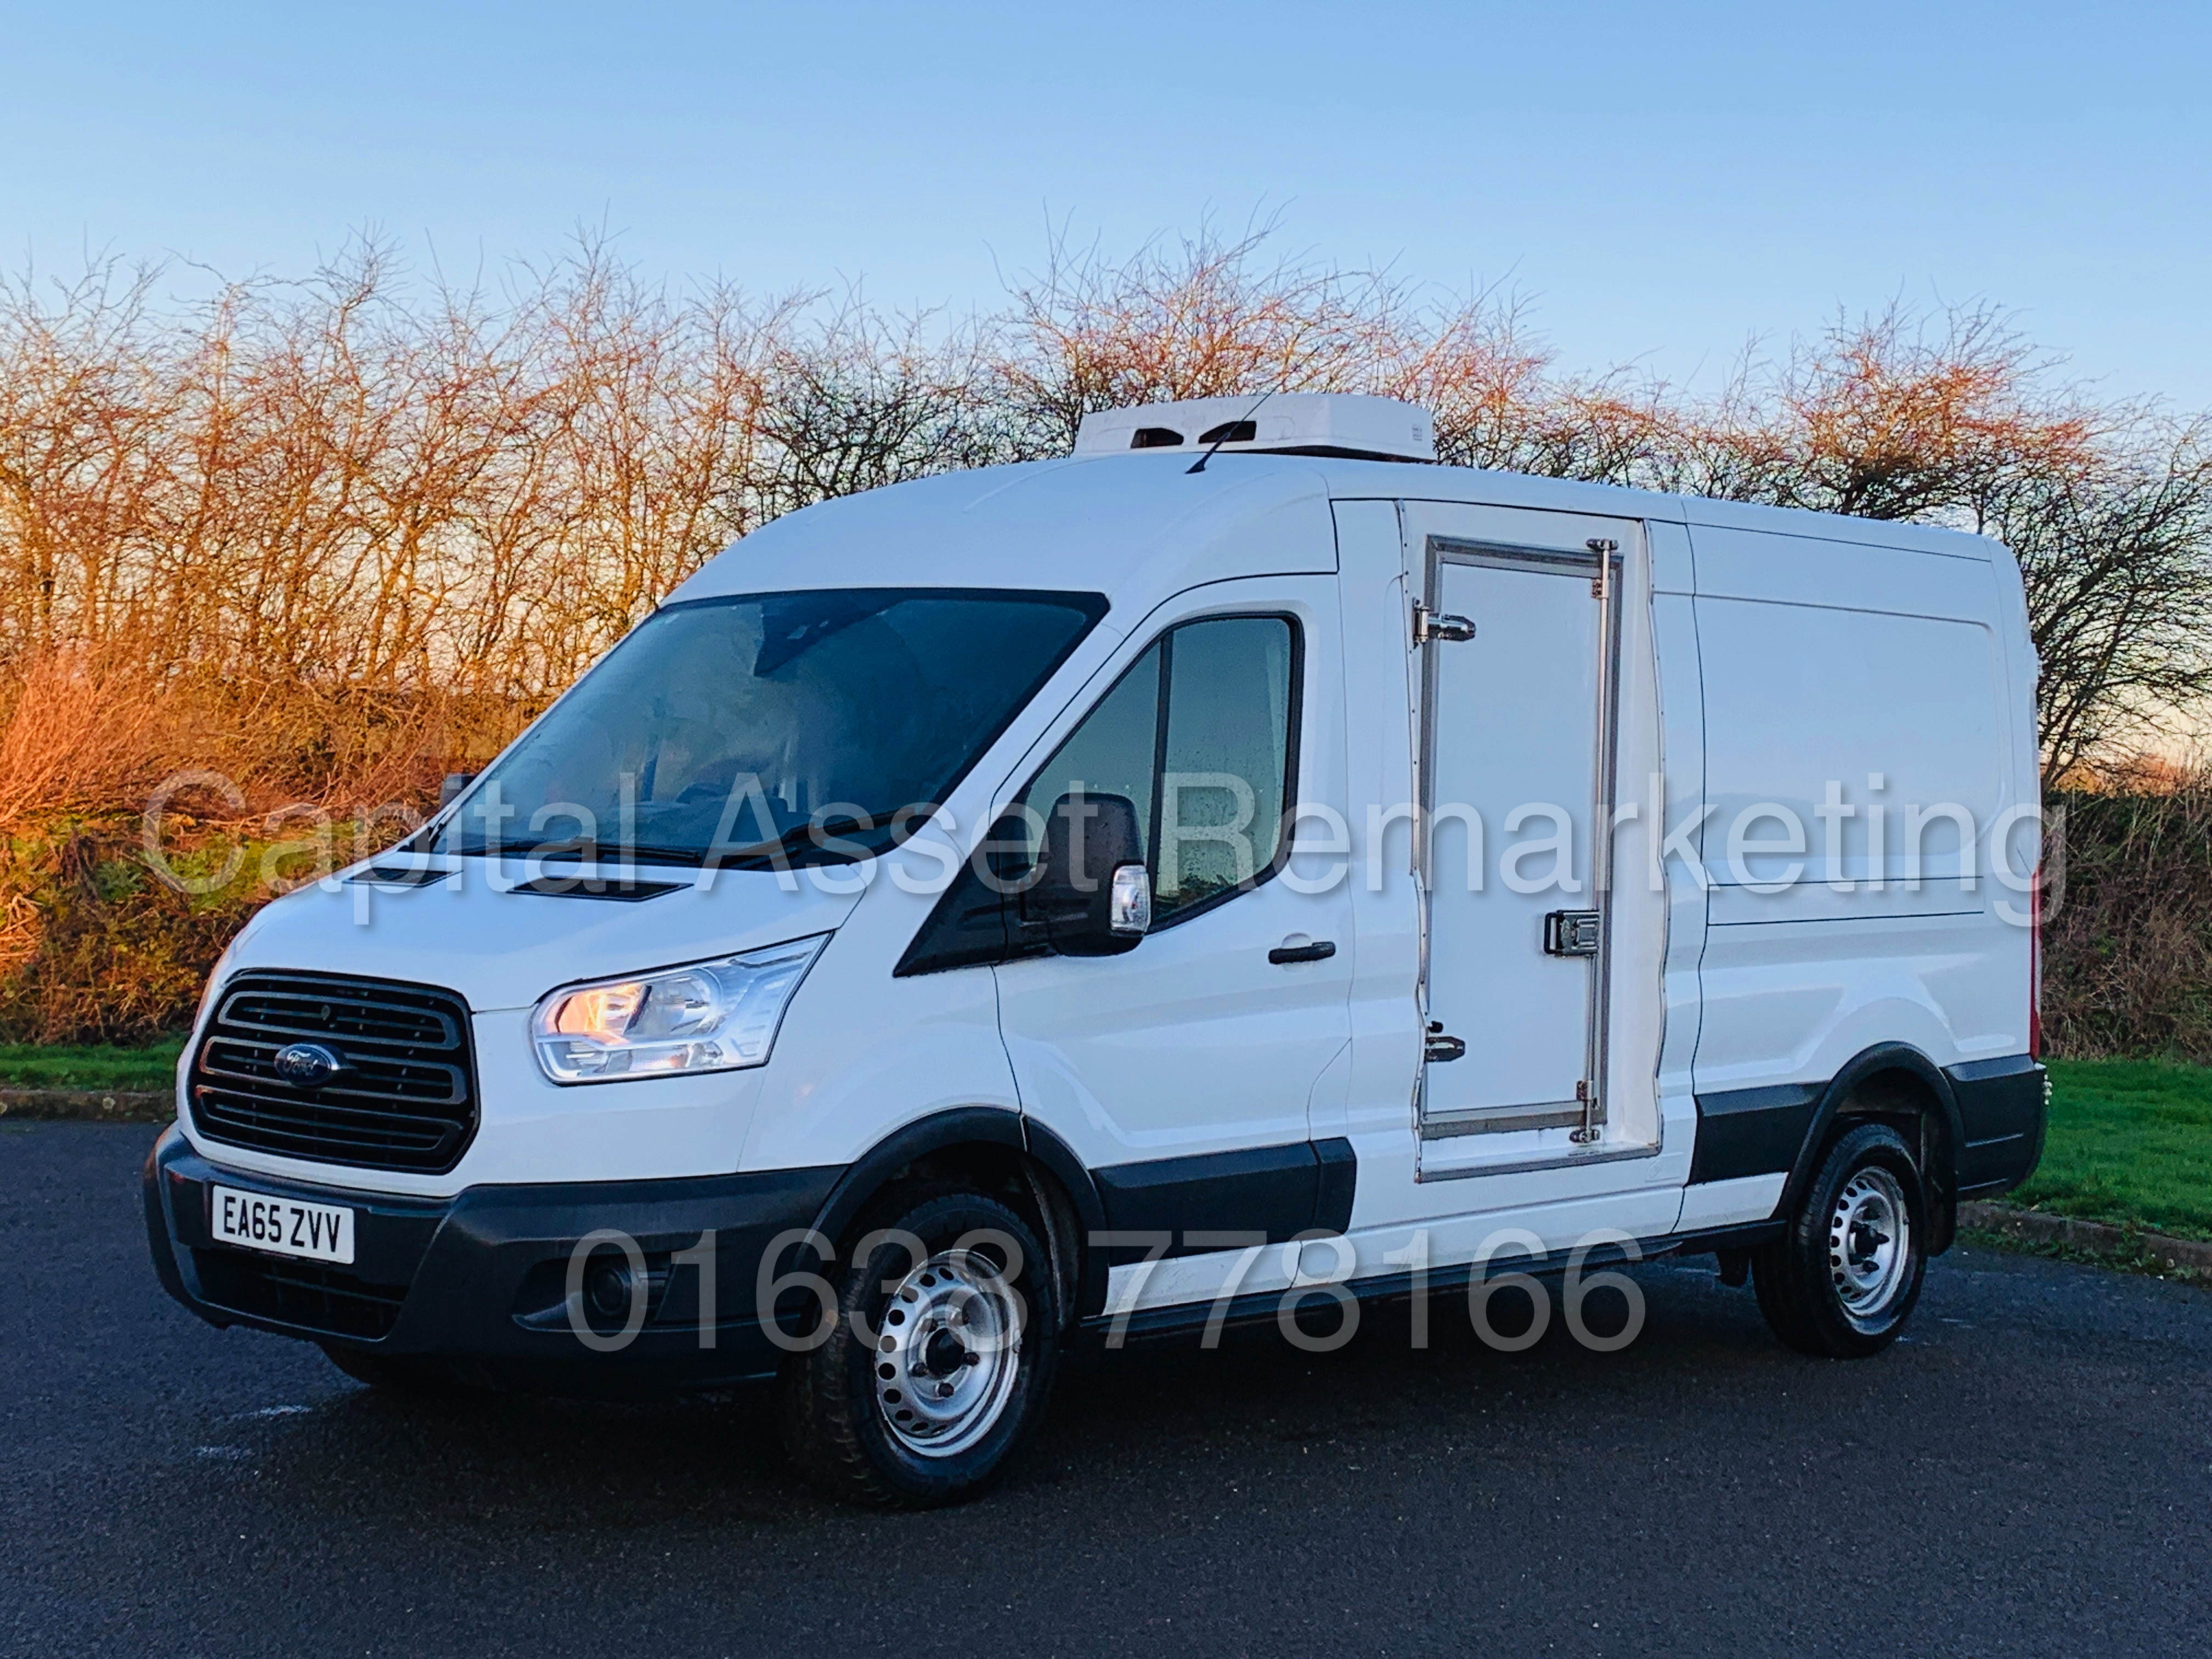 (On Sale) FORD TRANSIT T350 *LWB - REFRIGERATED VAN* (65 REG) '2.2 TDCI -125 BHP- 6 SPEED' (1 OWNER) - Image 7 of 43